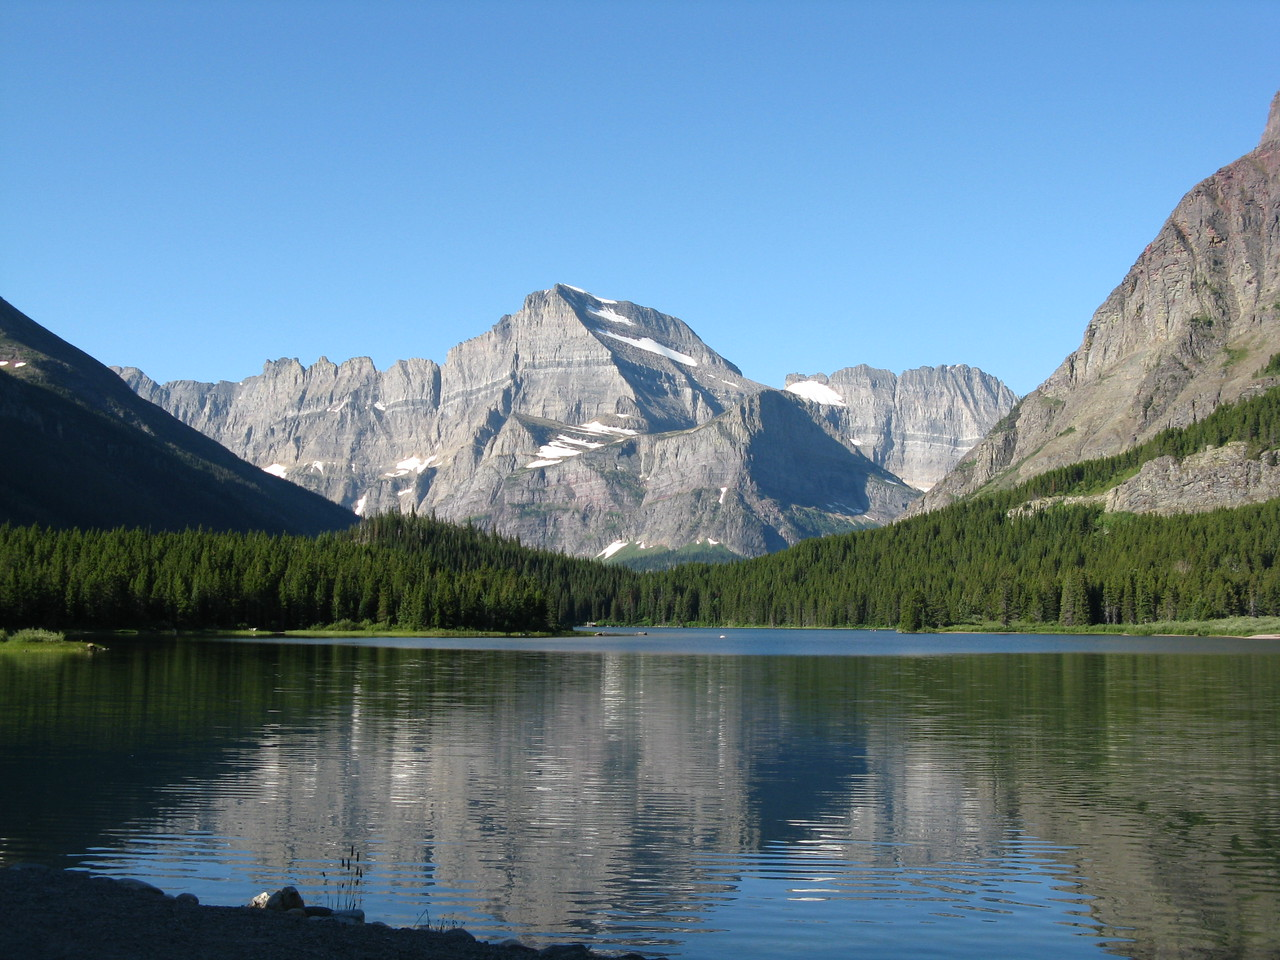 Mount Gould seen from in front of the Many Glacier Hotel on Swiftcurrent Lake, looking south- southwest.